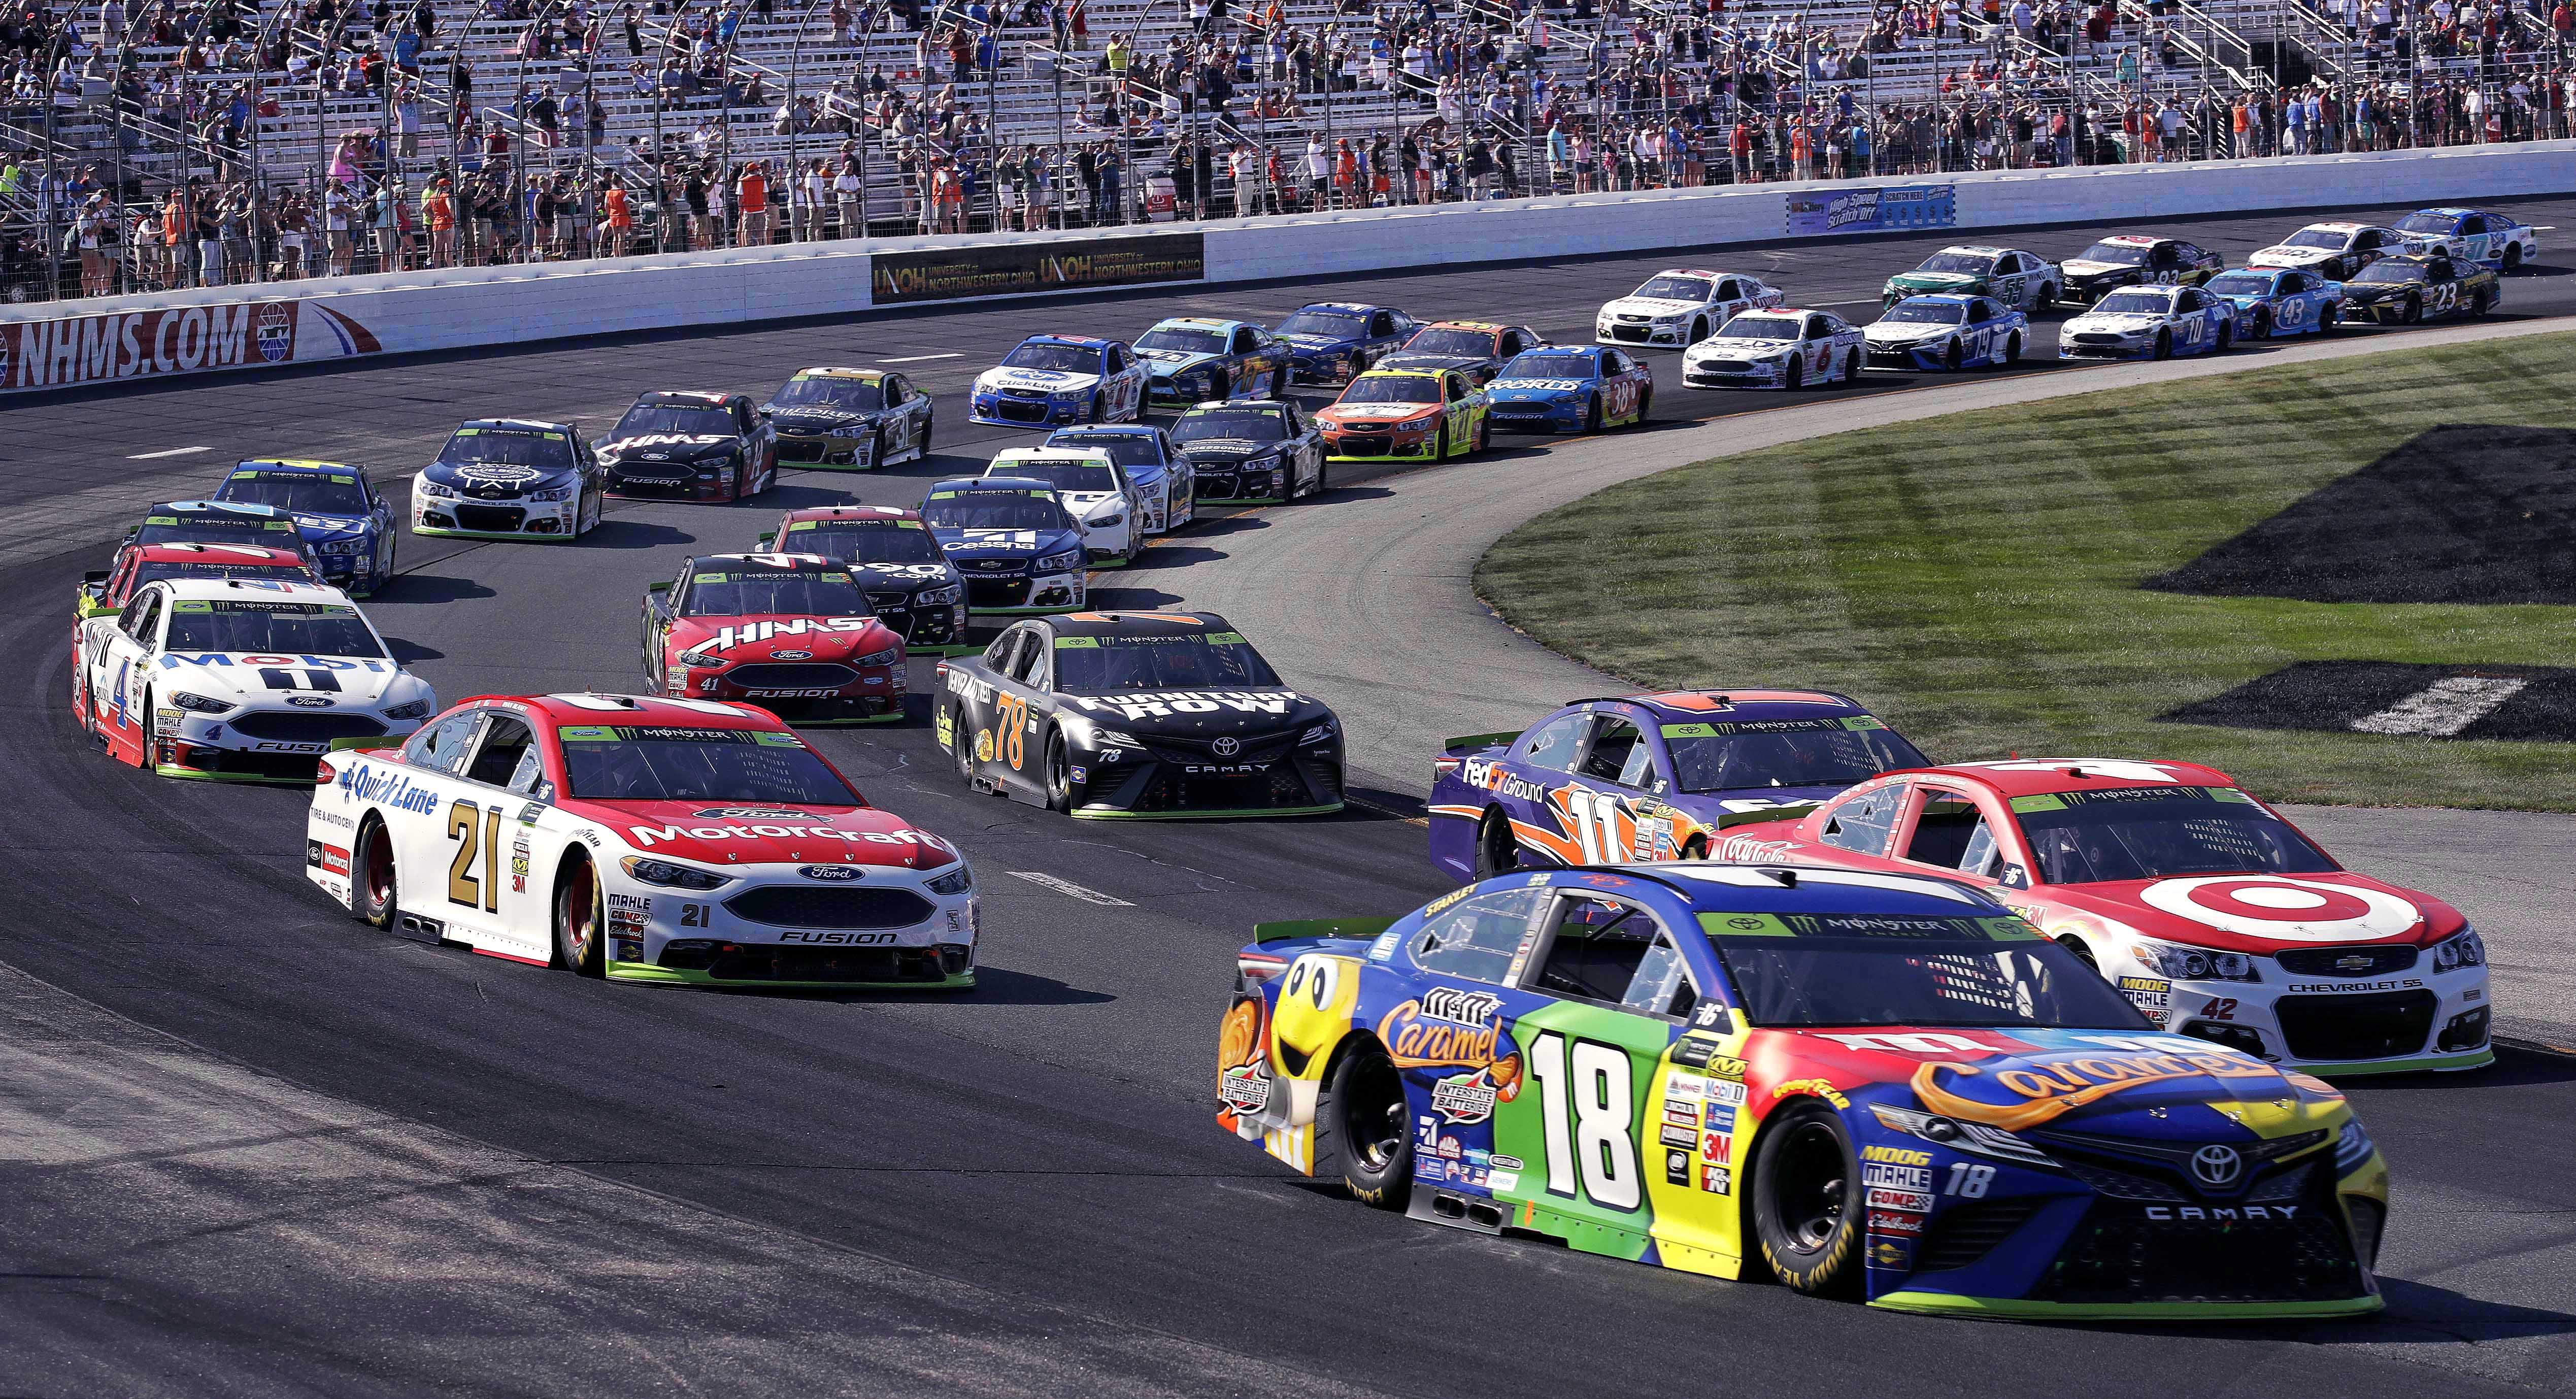 Trump earns his highest approval rating among NASCAR fans, poll finds